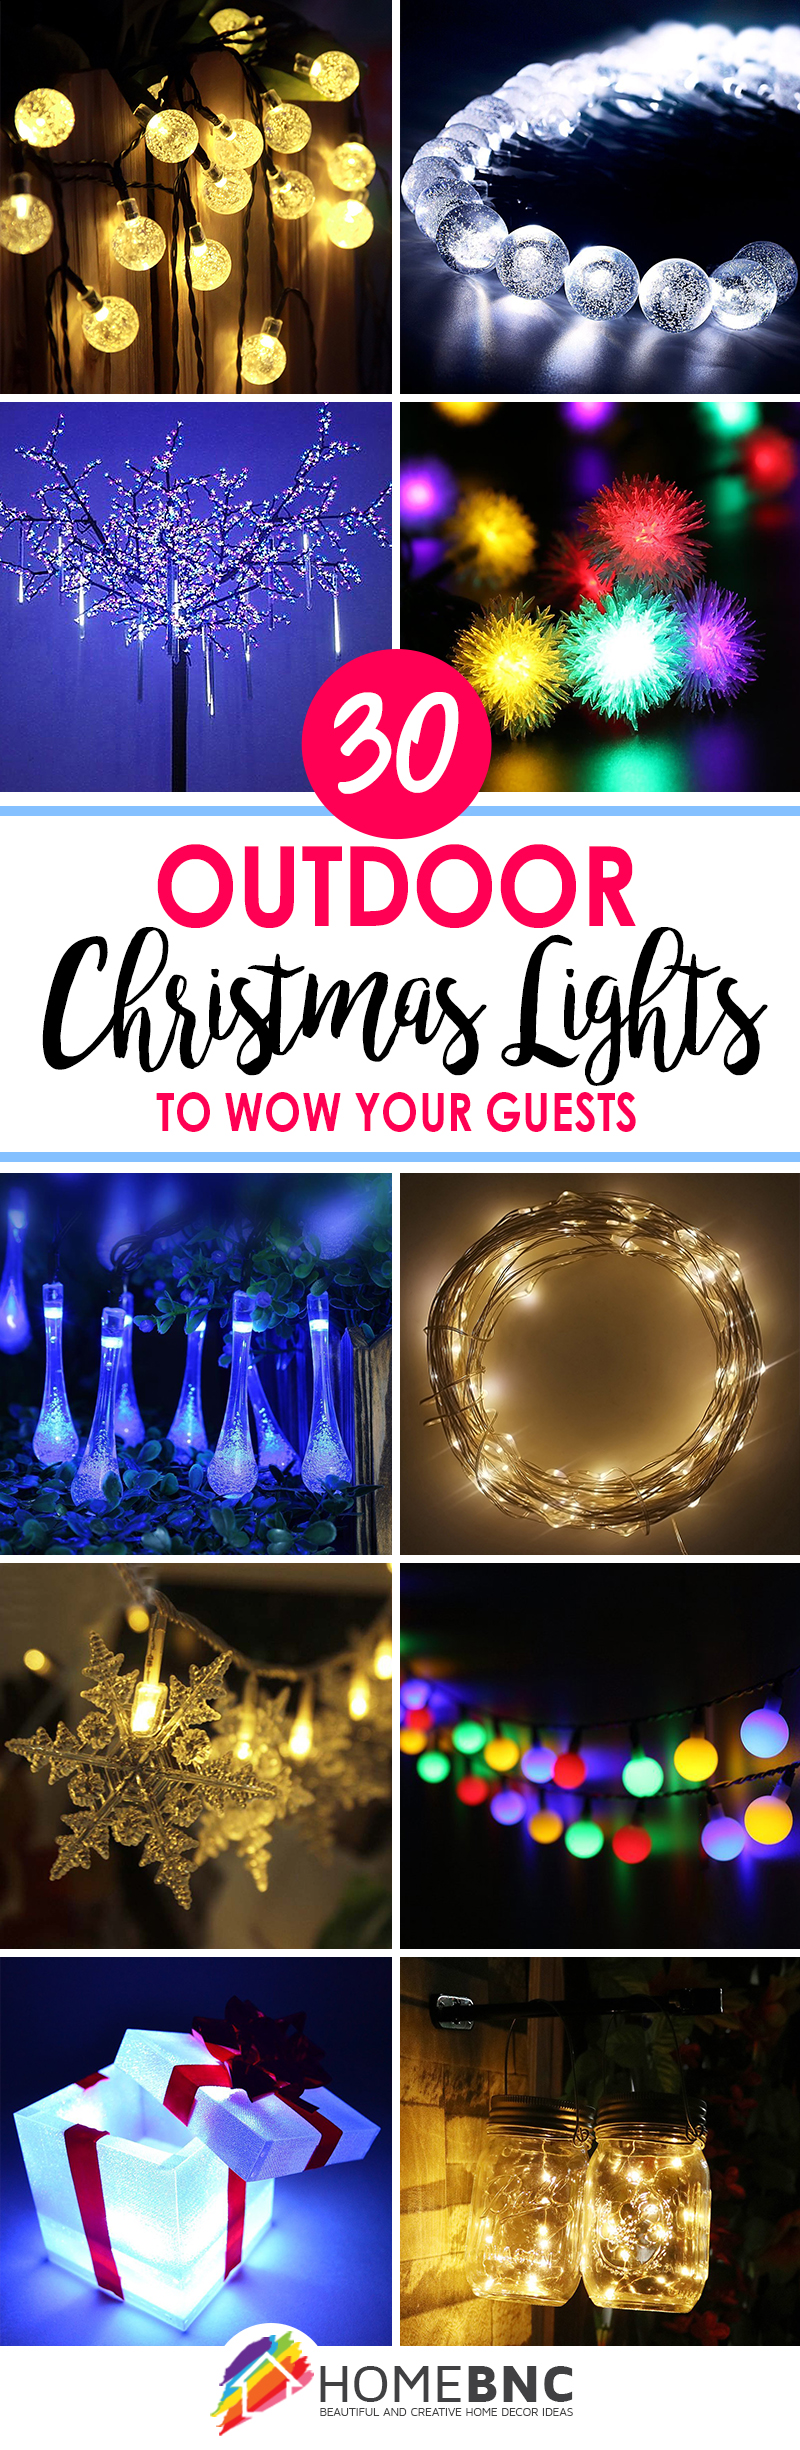 Outside Christmas Light Ideas Pinterest